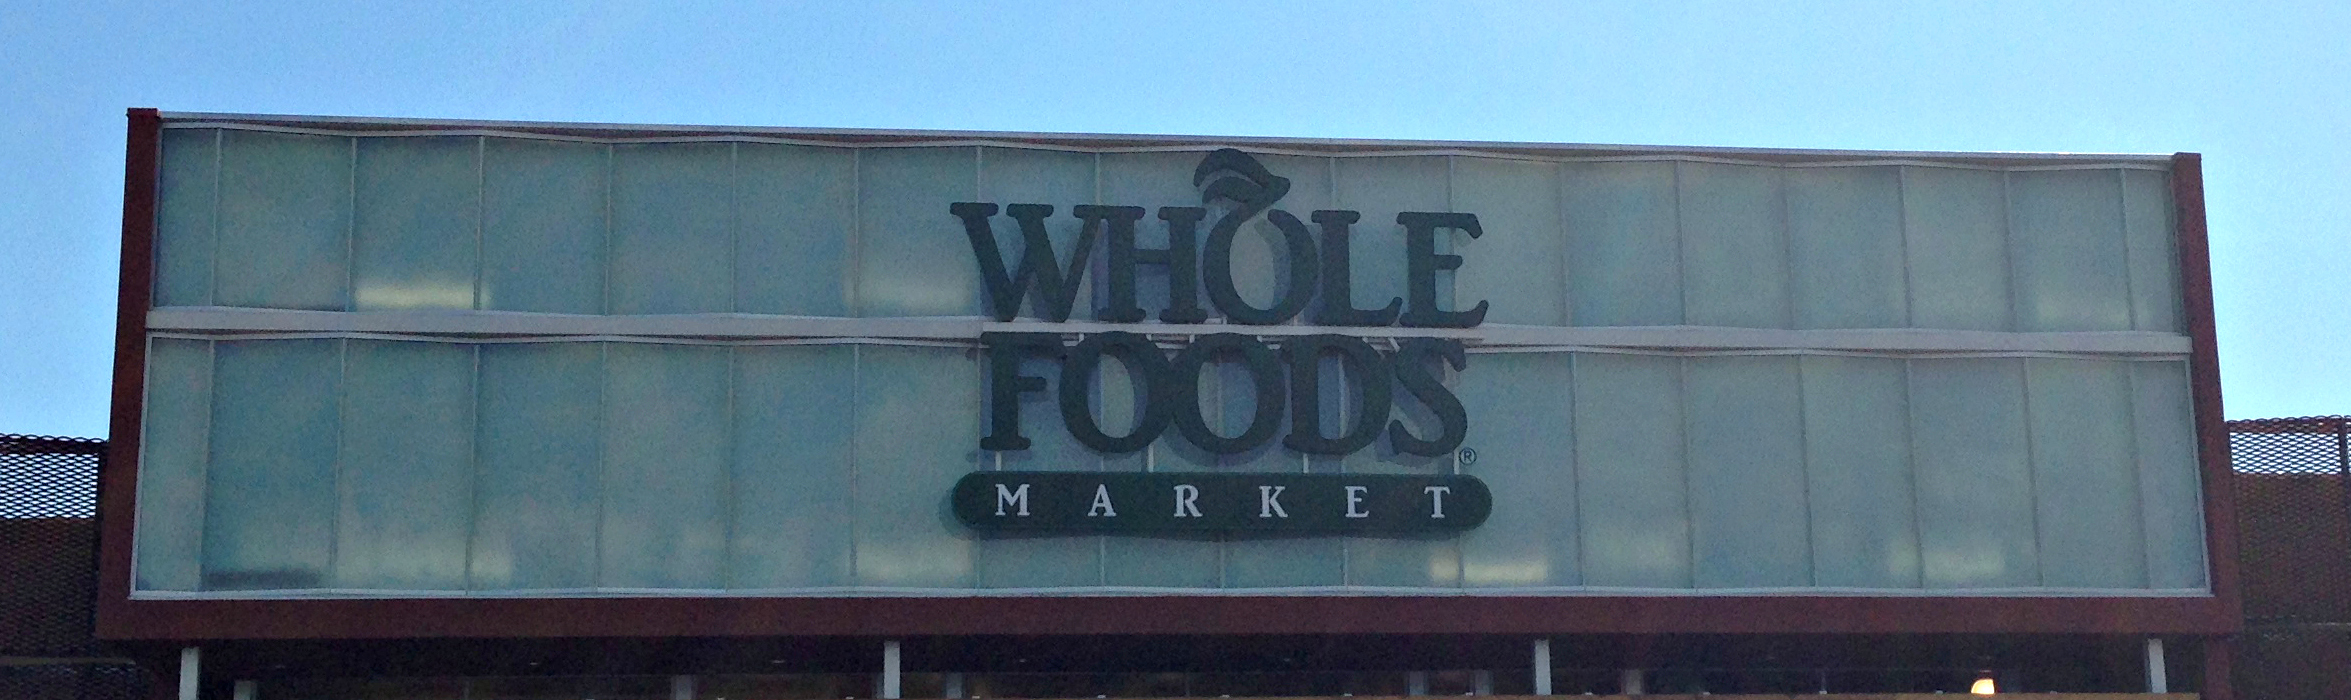 #ad Whole Foods Market 3 Day Whole Body Sale {1/24-1/26}!